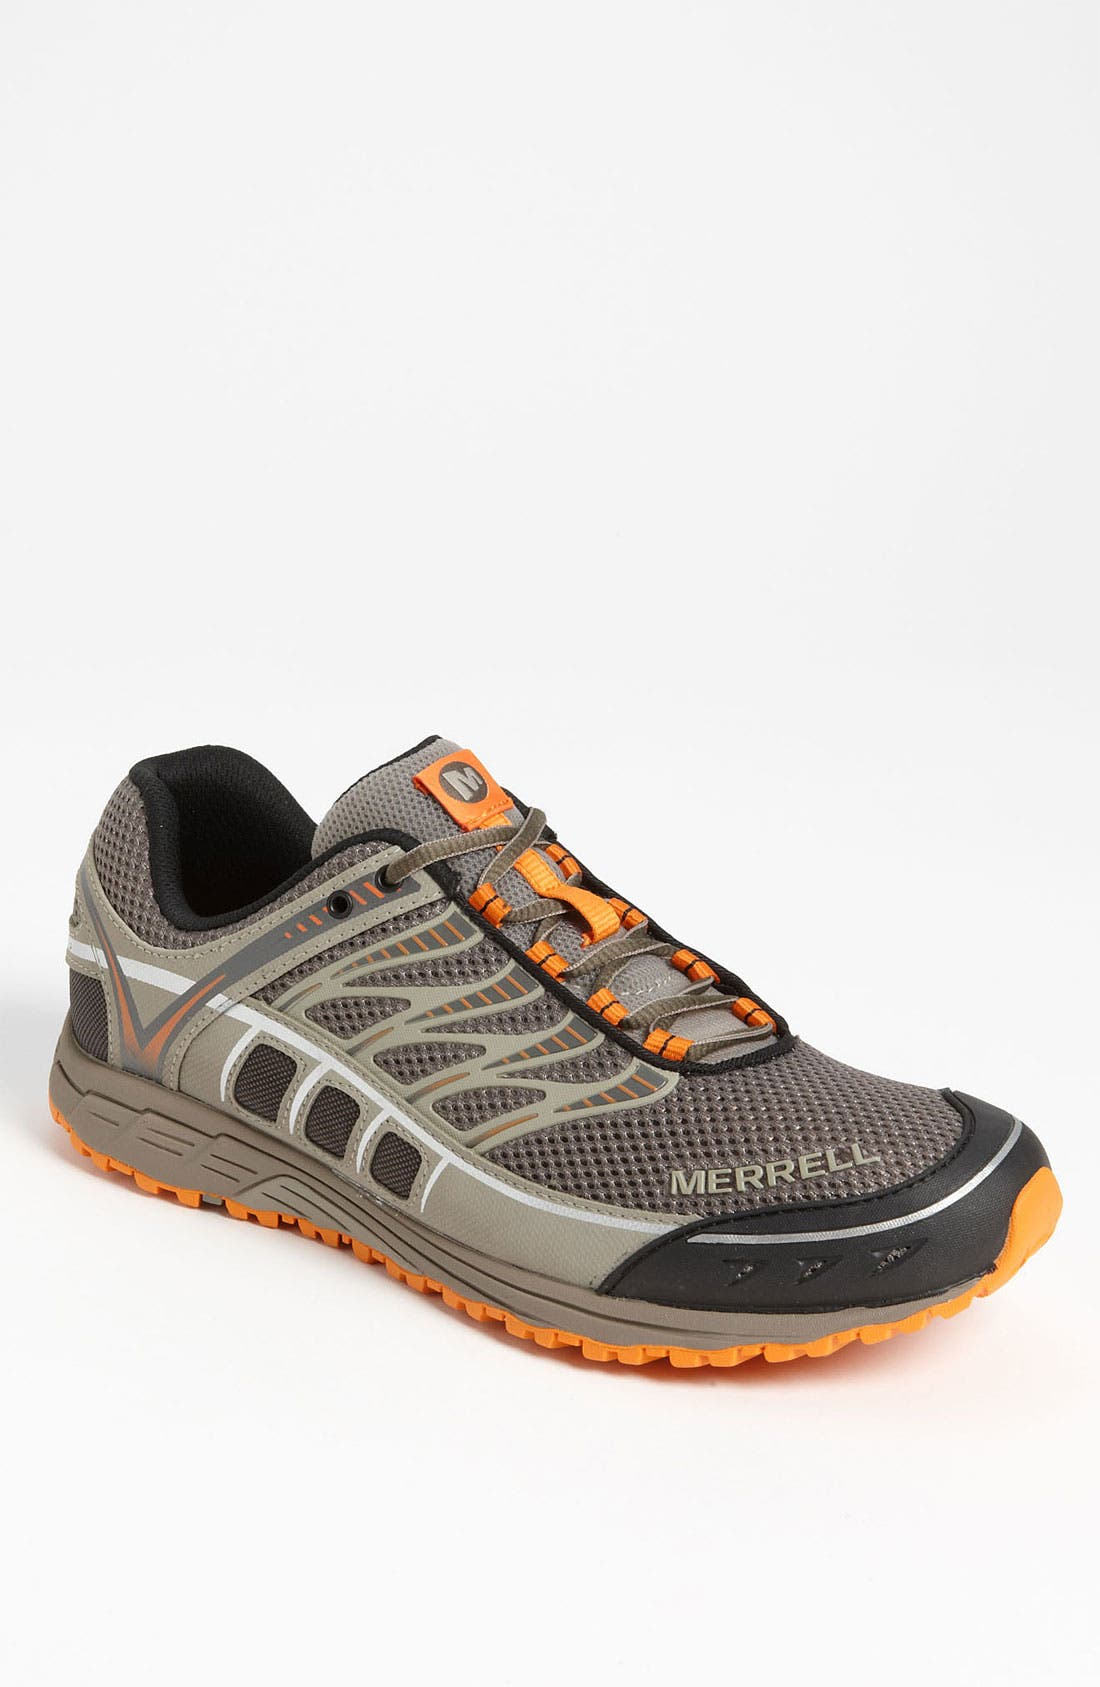 Main Image - Merrell 'Mix Master Tuff' Hiking Shoe (Men)